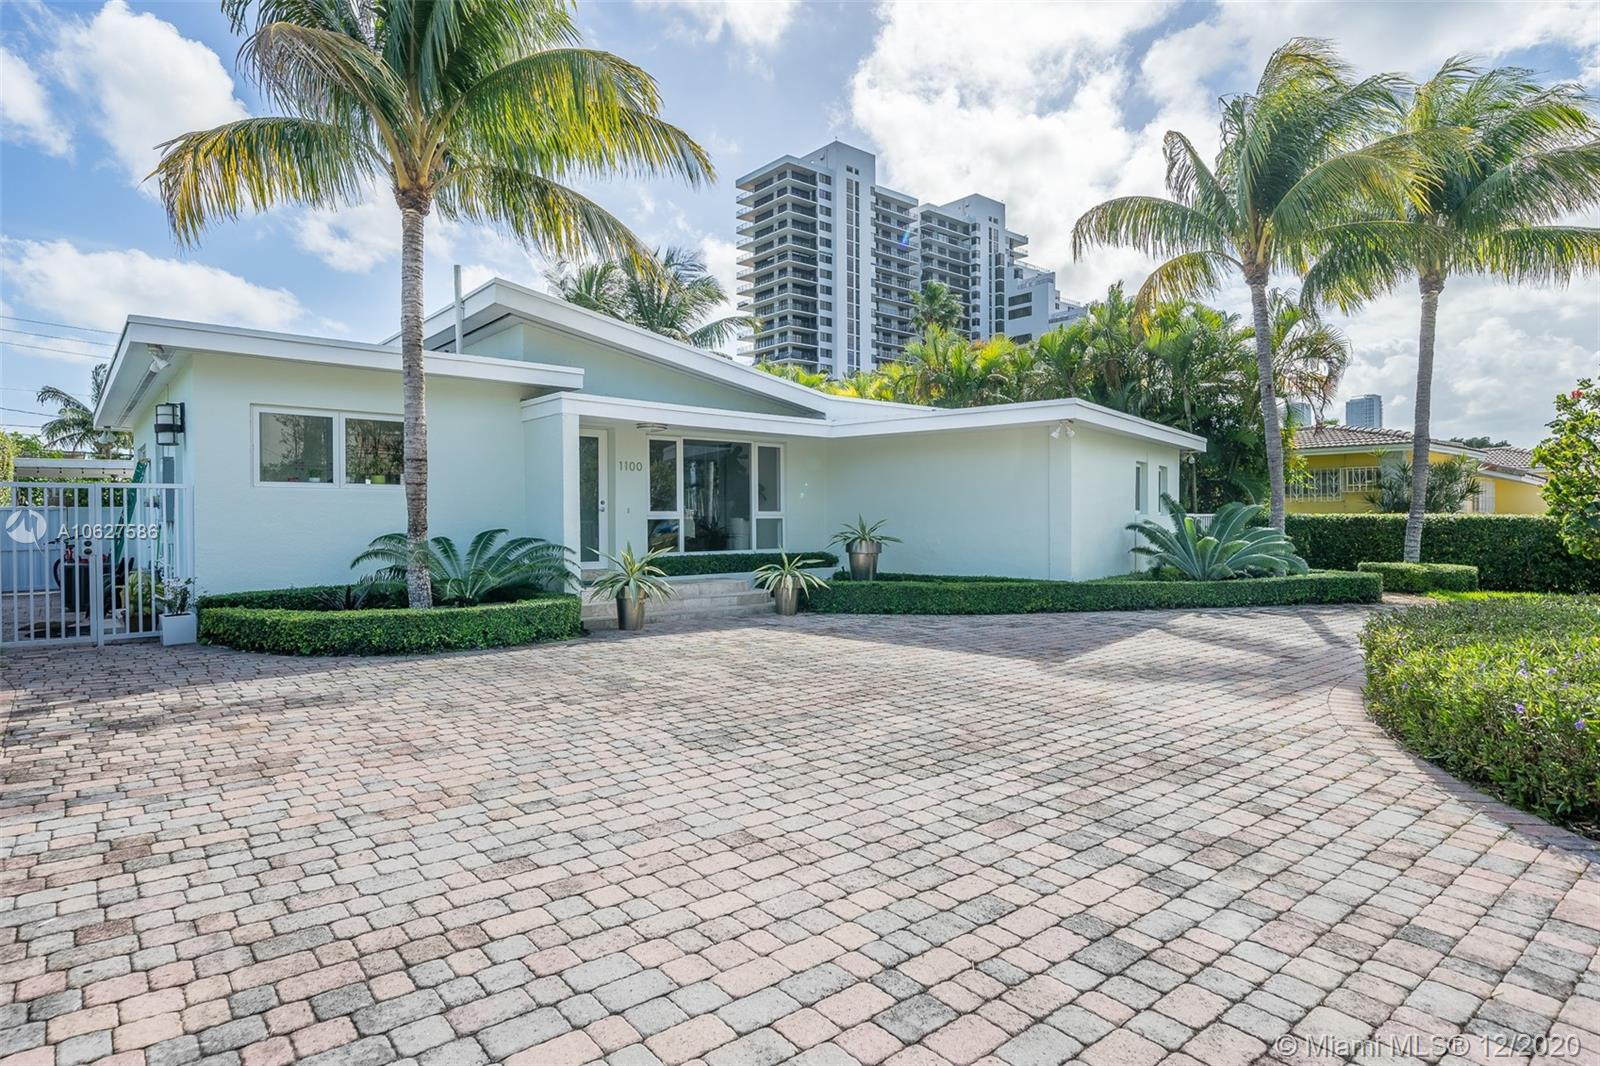 New price! the best time to buy is now. Bright and inviting tastefully renovated mid century home on a private street in Venetian Isles. Bike to the beach or downtown. Features 3 bedrooms 2 bathrooms, great Florida room overlooking the pool, gourmet kitchen. Open floor plan, marble floors, impact windows and doors, pool and patio area with barbecue grill ready for your entertainment. Paved driveway with electric gate enhance this total package.